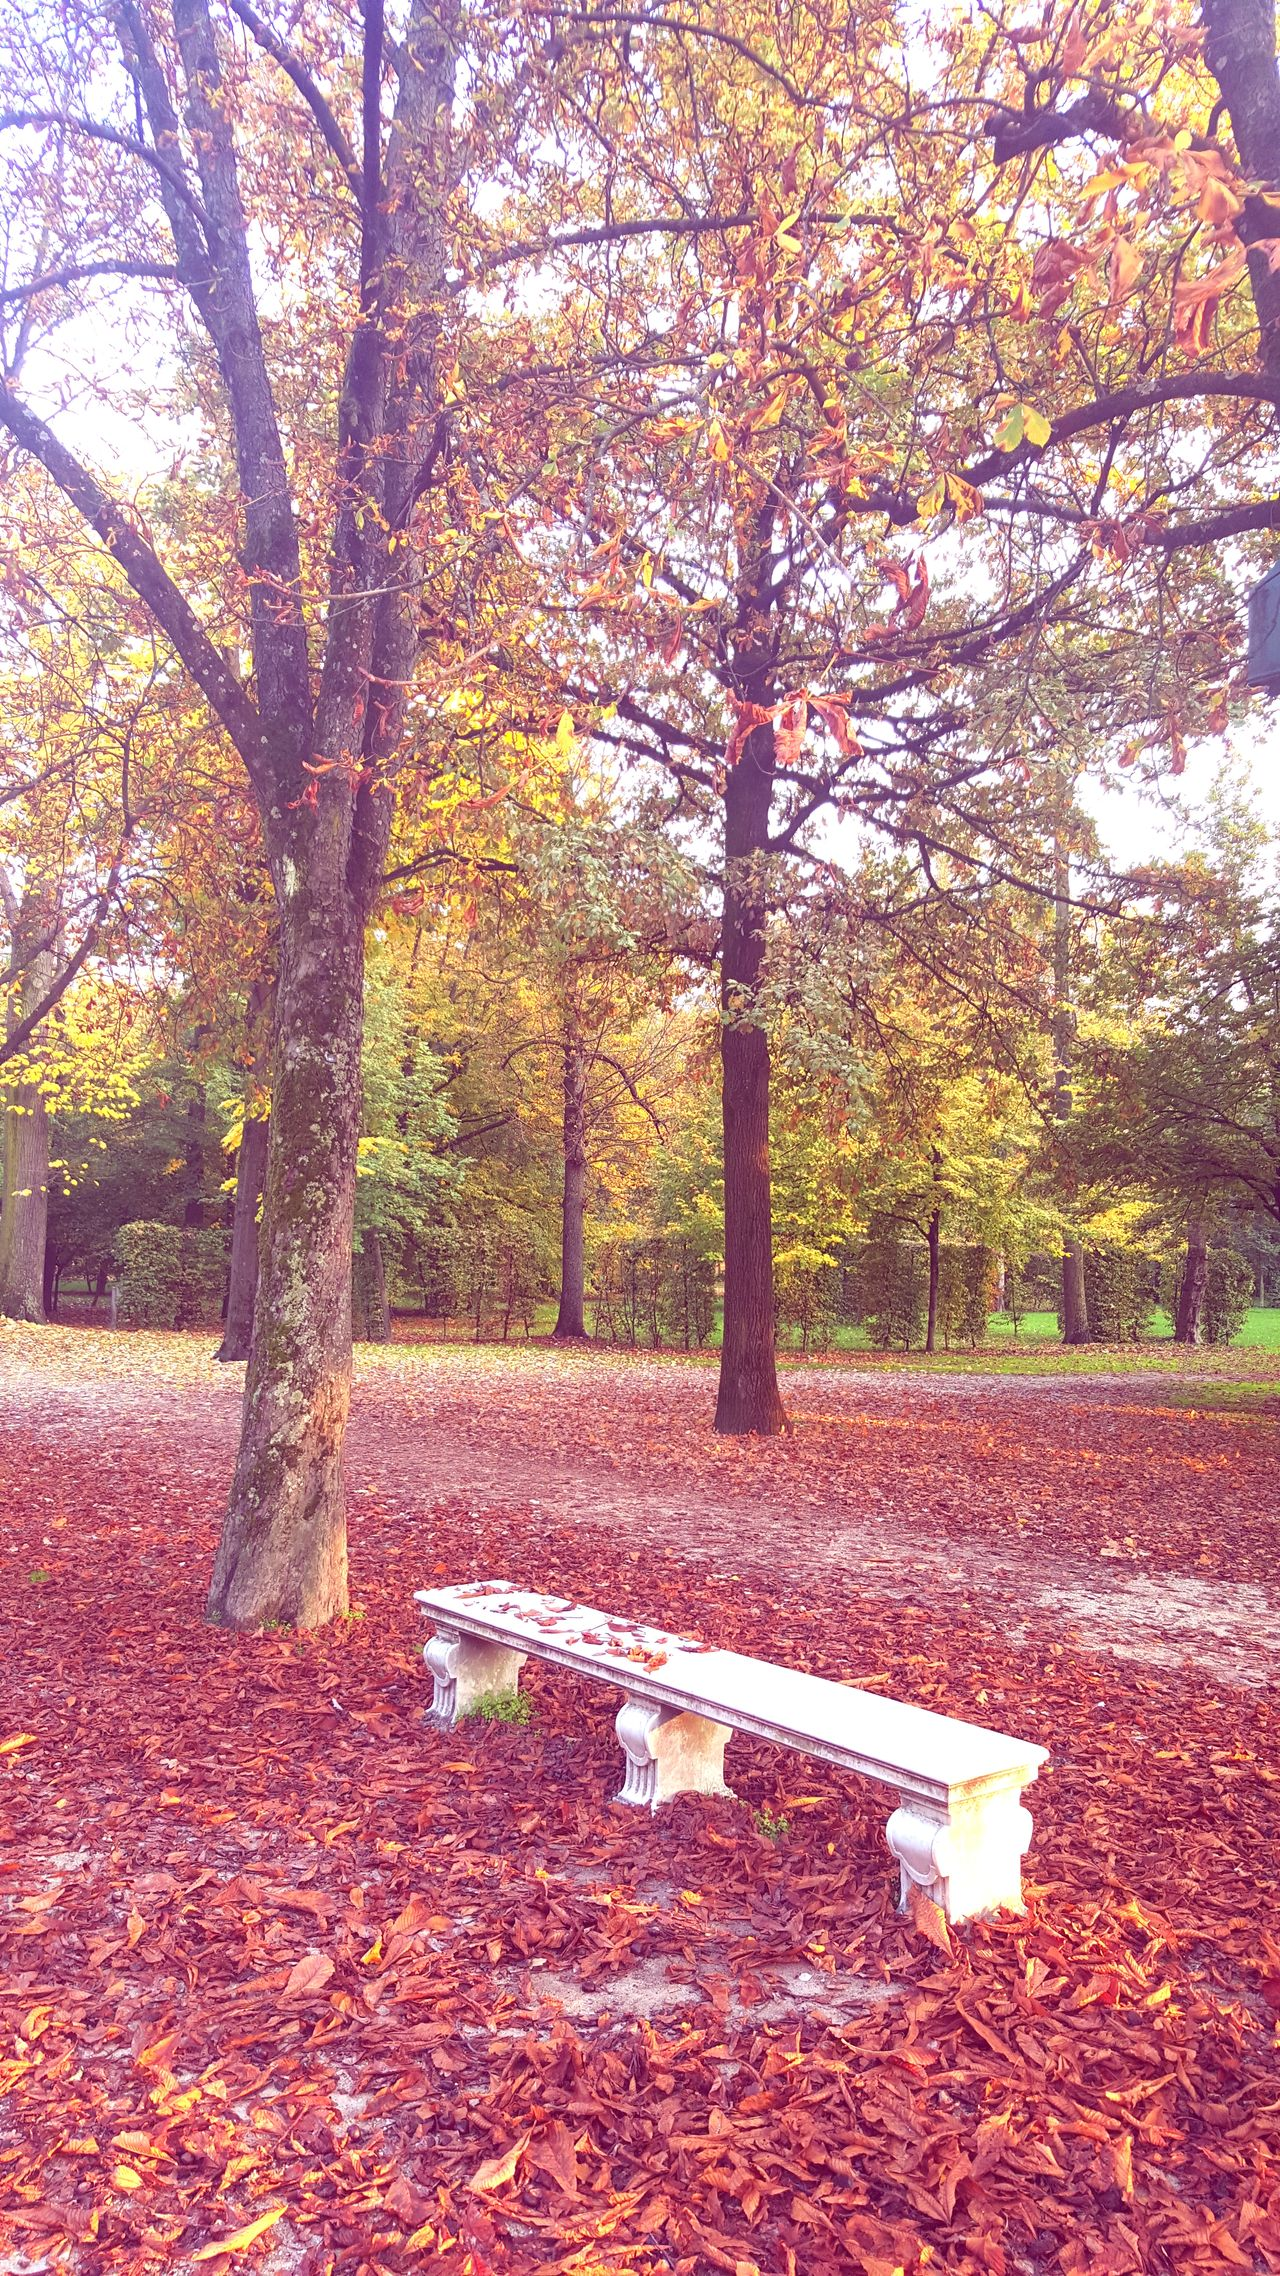 Autumn Tree Day Outdoors Leaf No People Change Nature Sky Red Panchina Parco Park Ducale